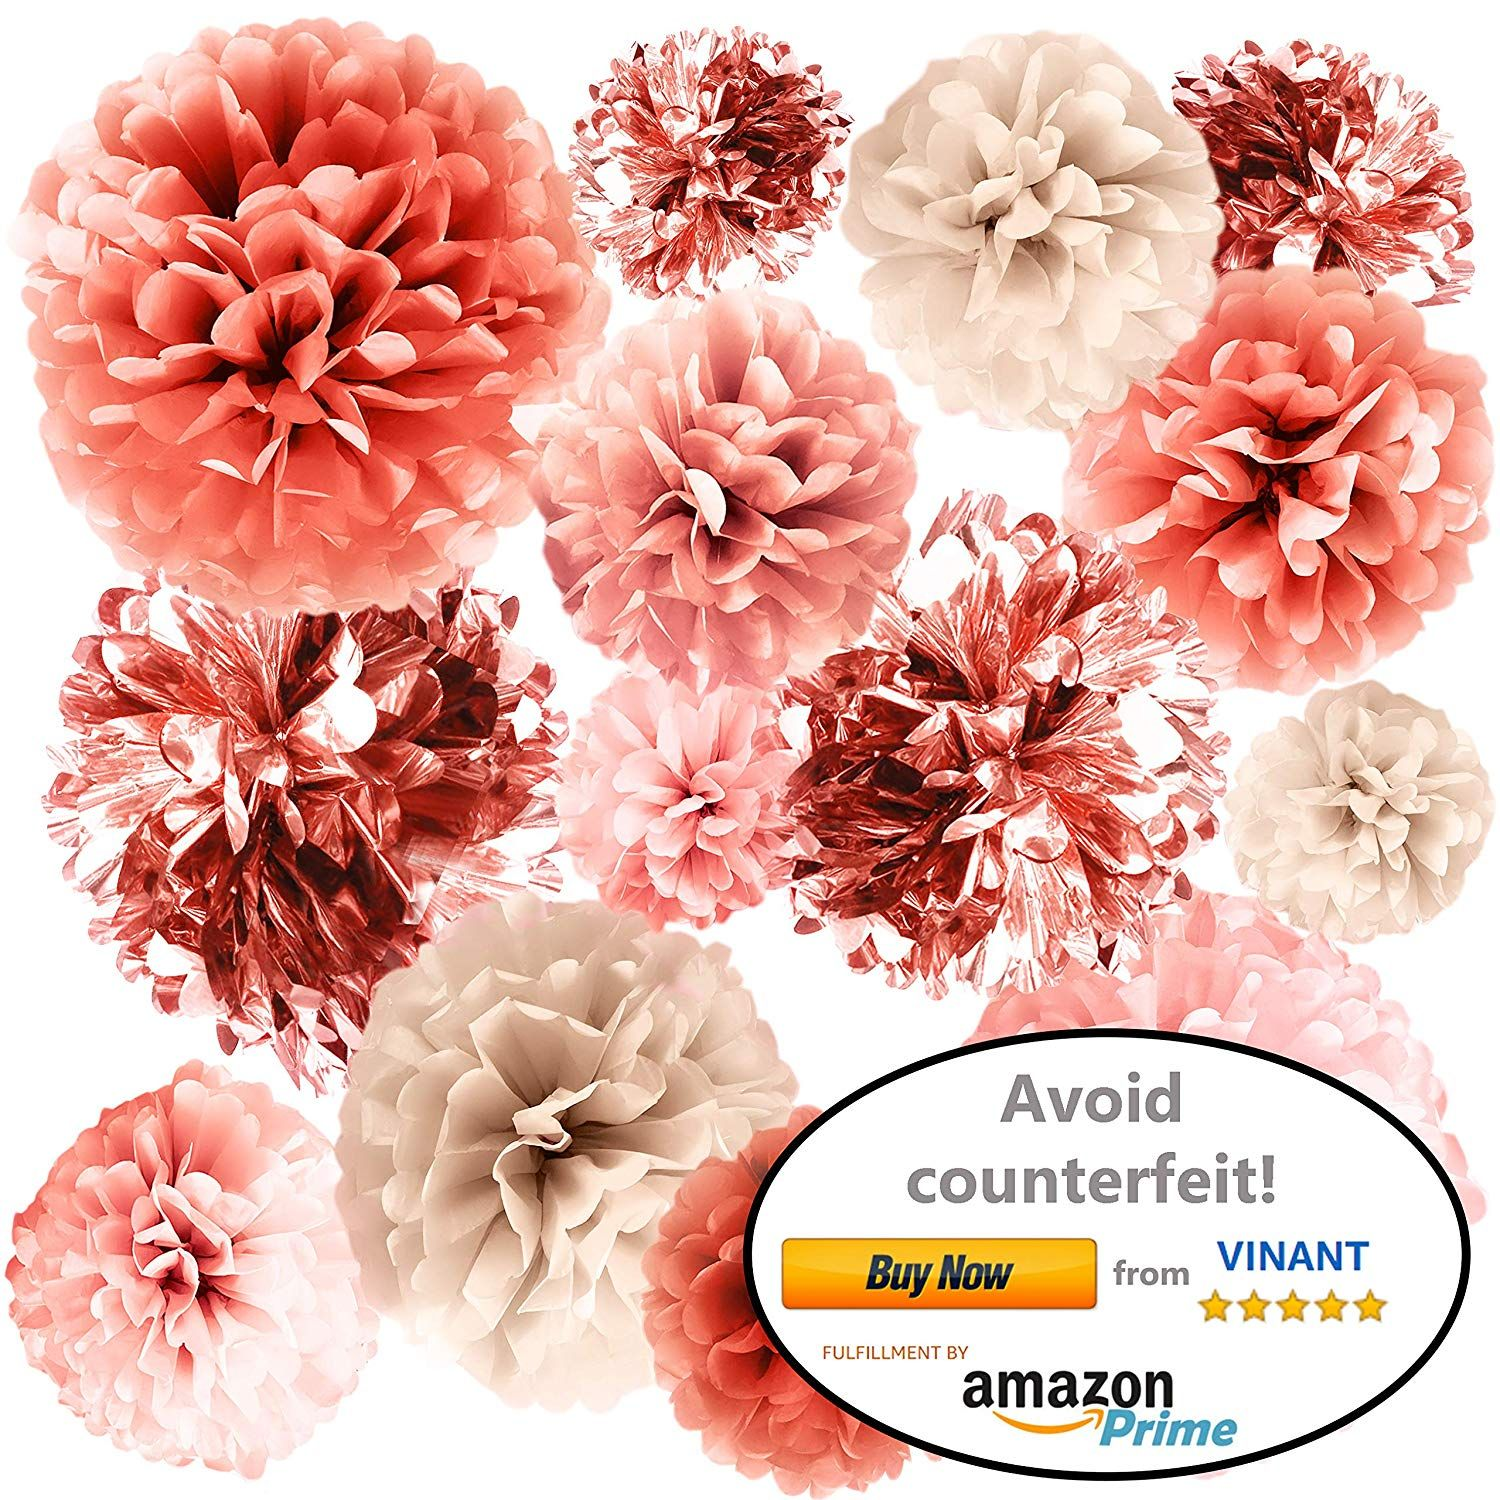 Vinant 20 Pcs Rose Gold Party Decorations Metallic Foil And Tissue Paper Pom Poms 15 00 Rose Gold Party Decor Gold Party Decorations Rose Gold Party